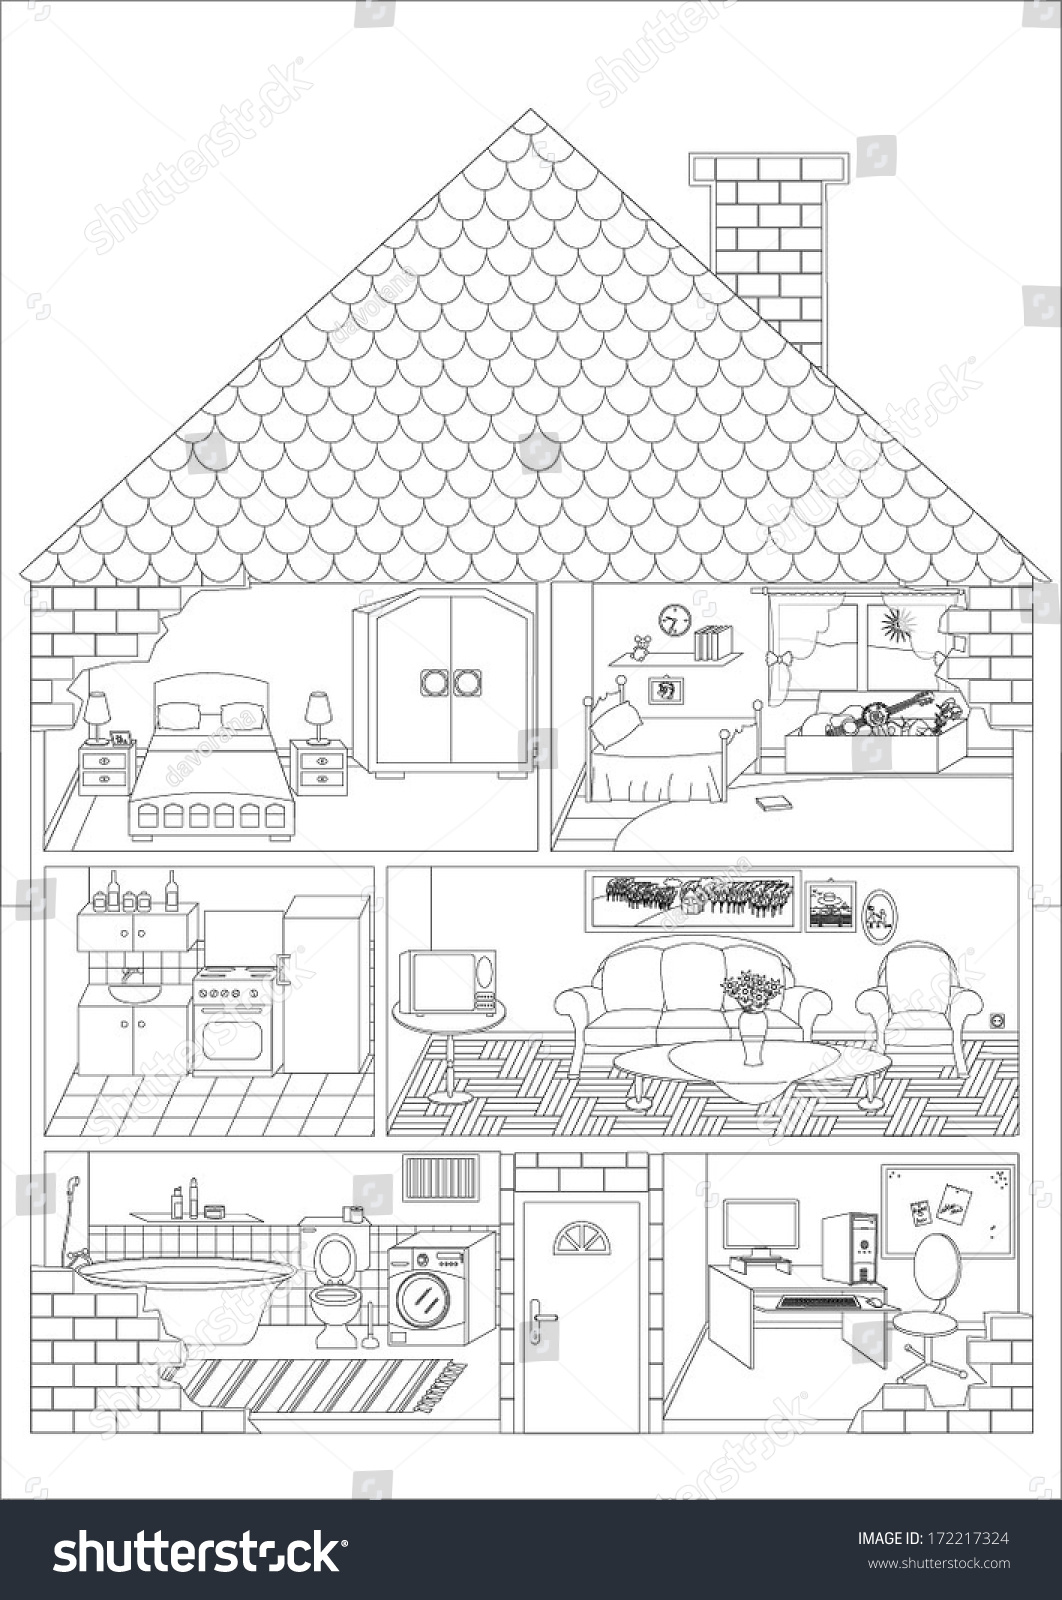 House outline with rooms - All Rooms In The House Outline Vector Art Image Illustration Isolated On White